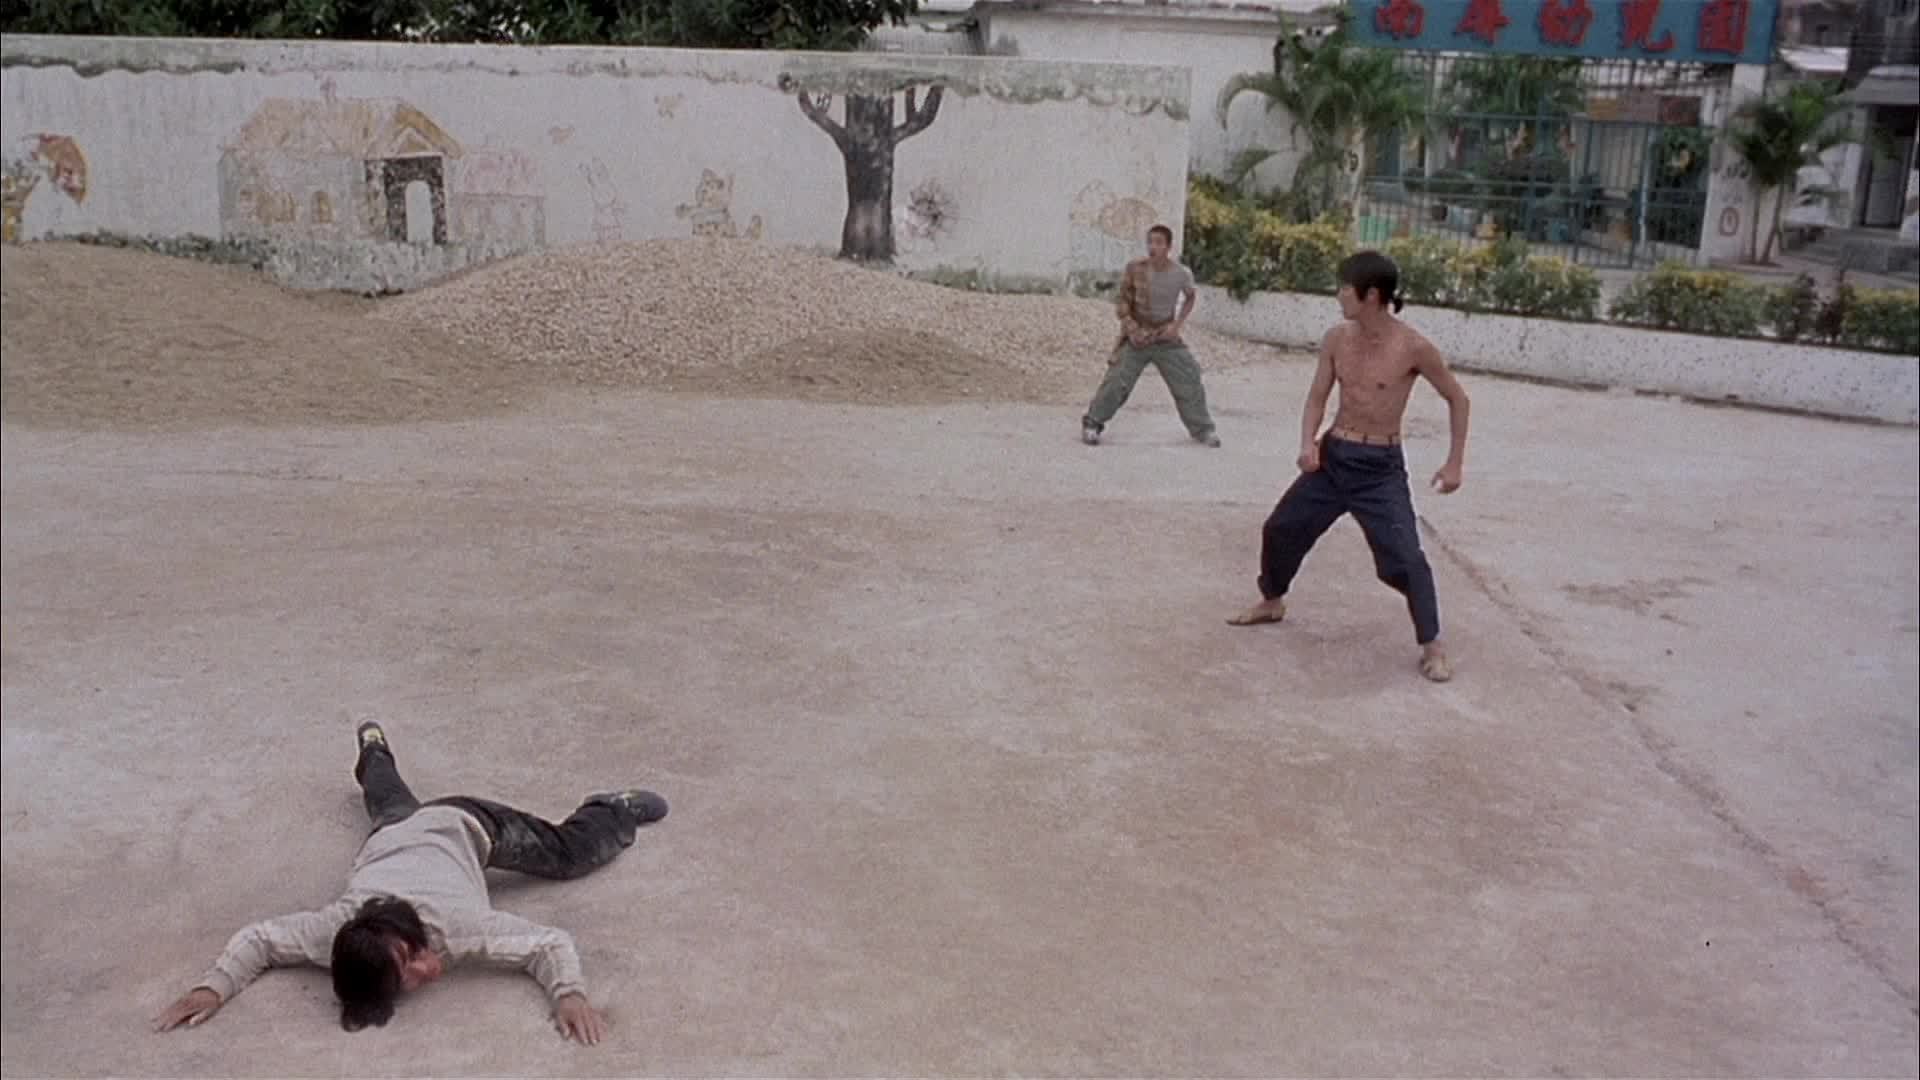 Shaolin Soccer - I'm Here to Play Soccer